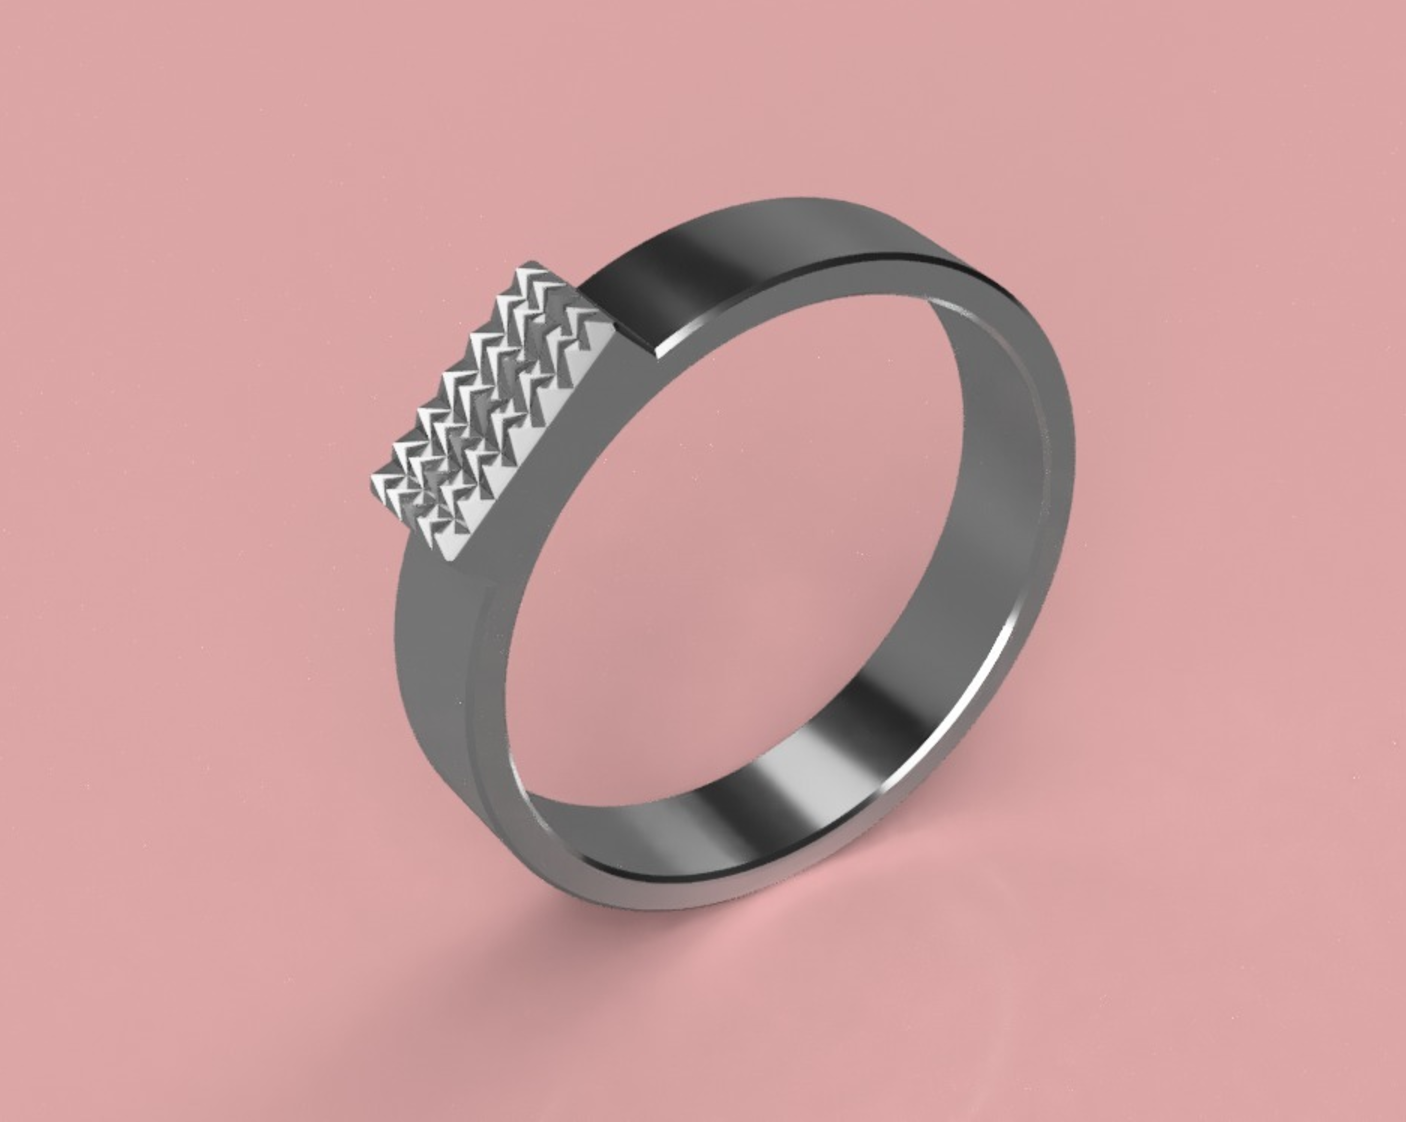 Free Cool Ring ( Gender Neutral ) 3D printer file ・ Cults